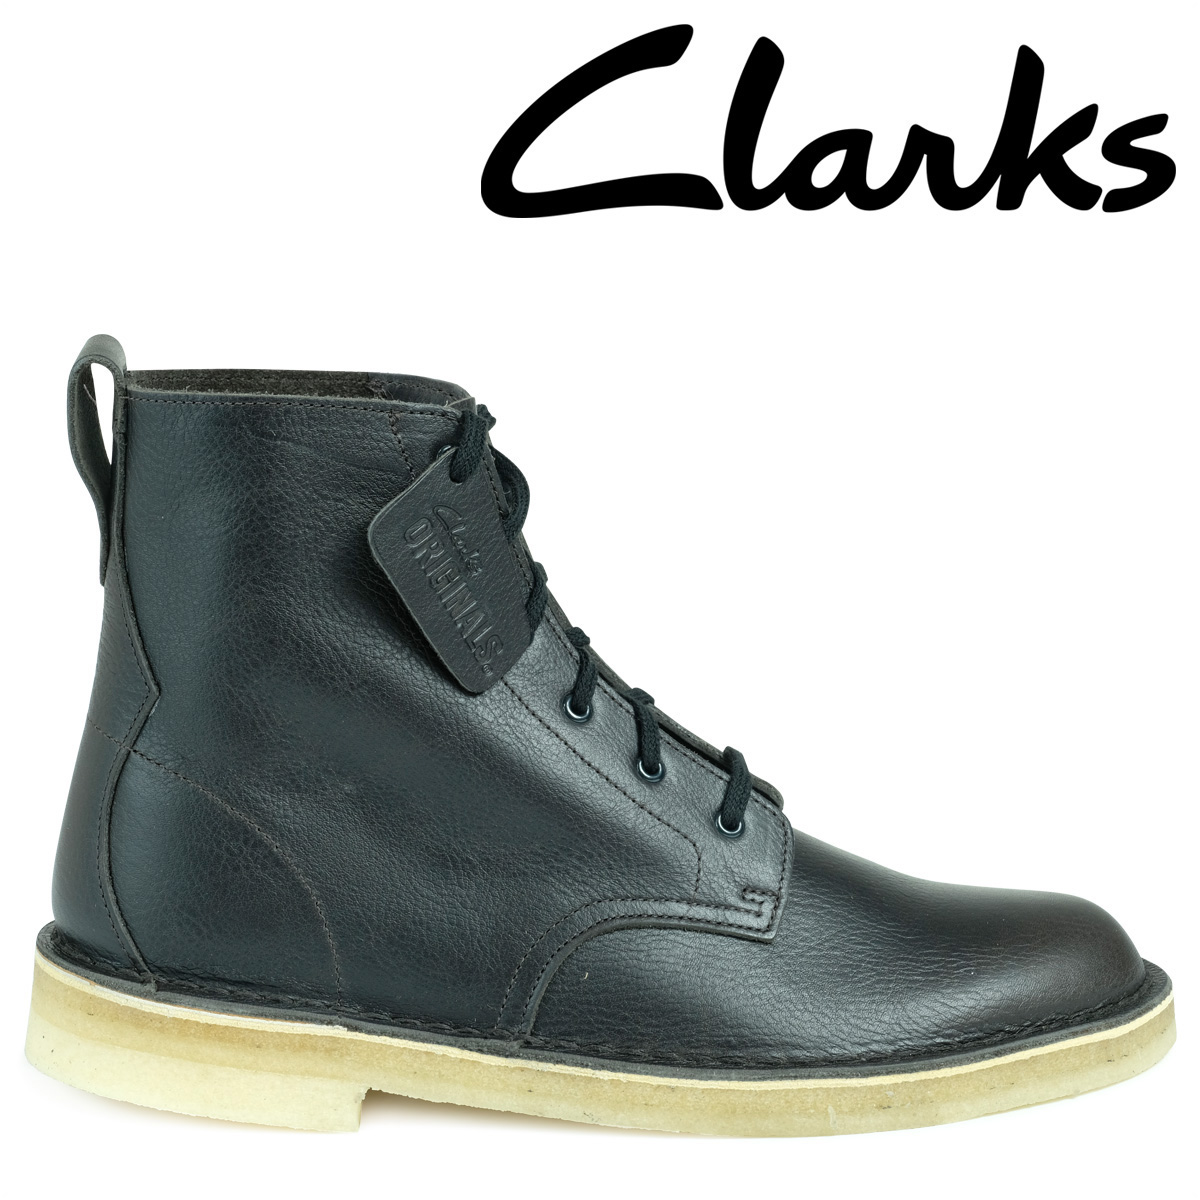 Clarks dessert Mali boots men zouk Lark's DESERT MALI 26126522 shoes  charcoal [load planned Shinnyu load in reservation product 10/26 containing]